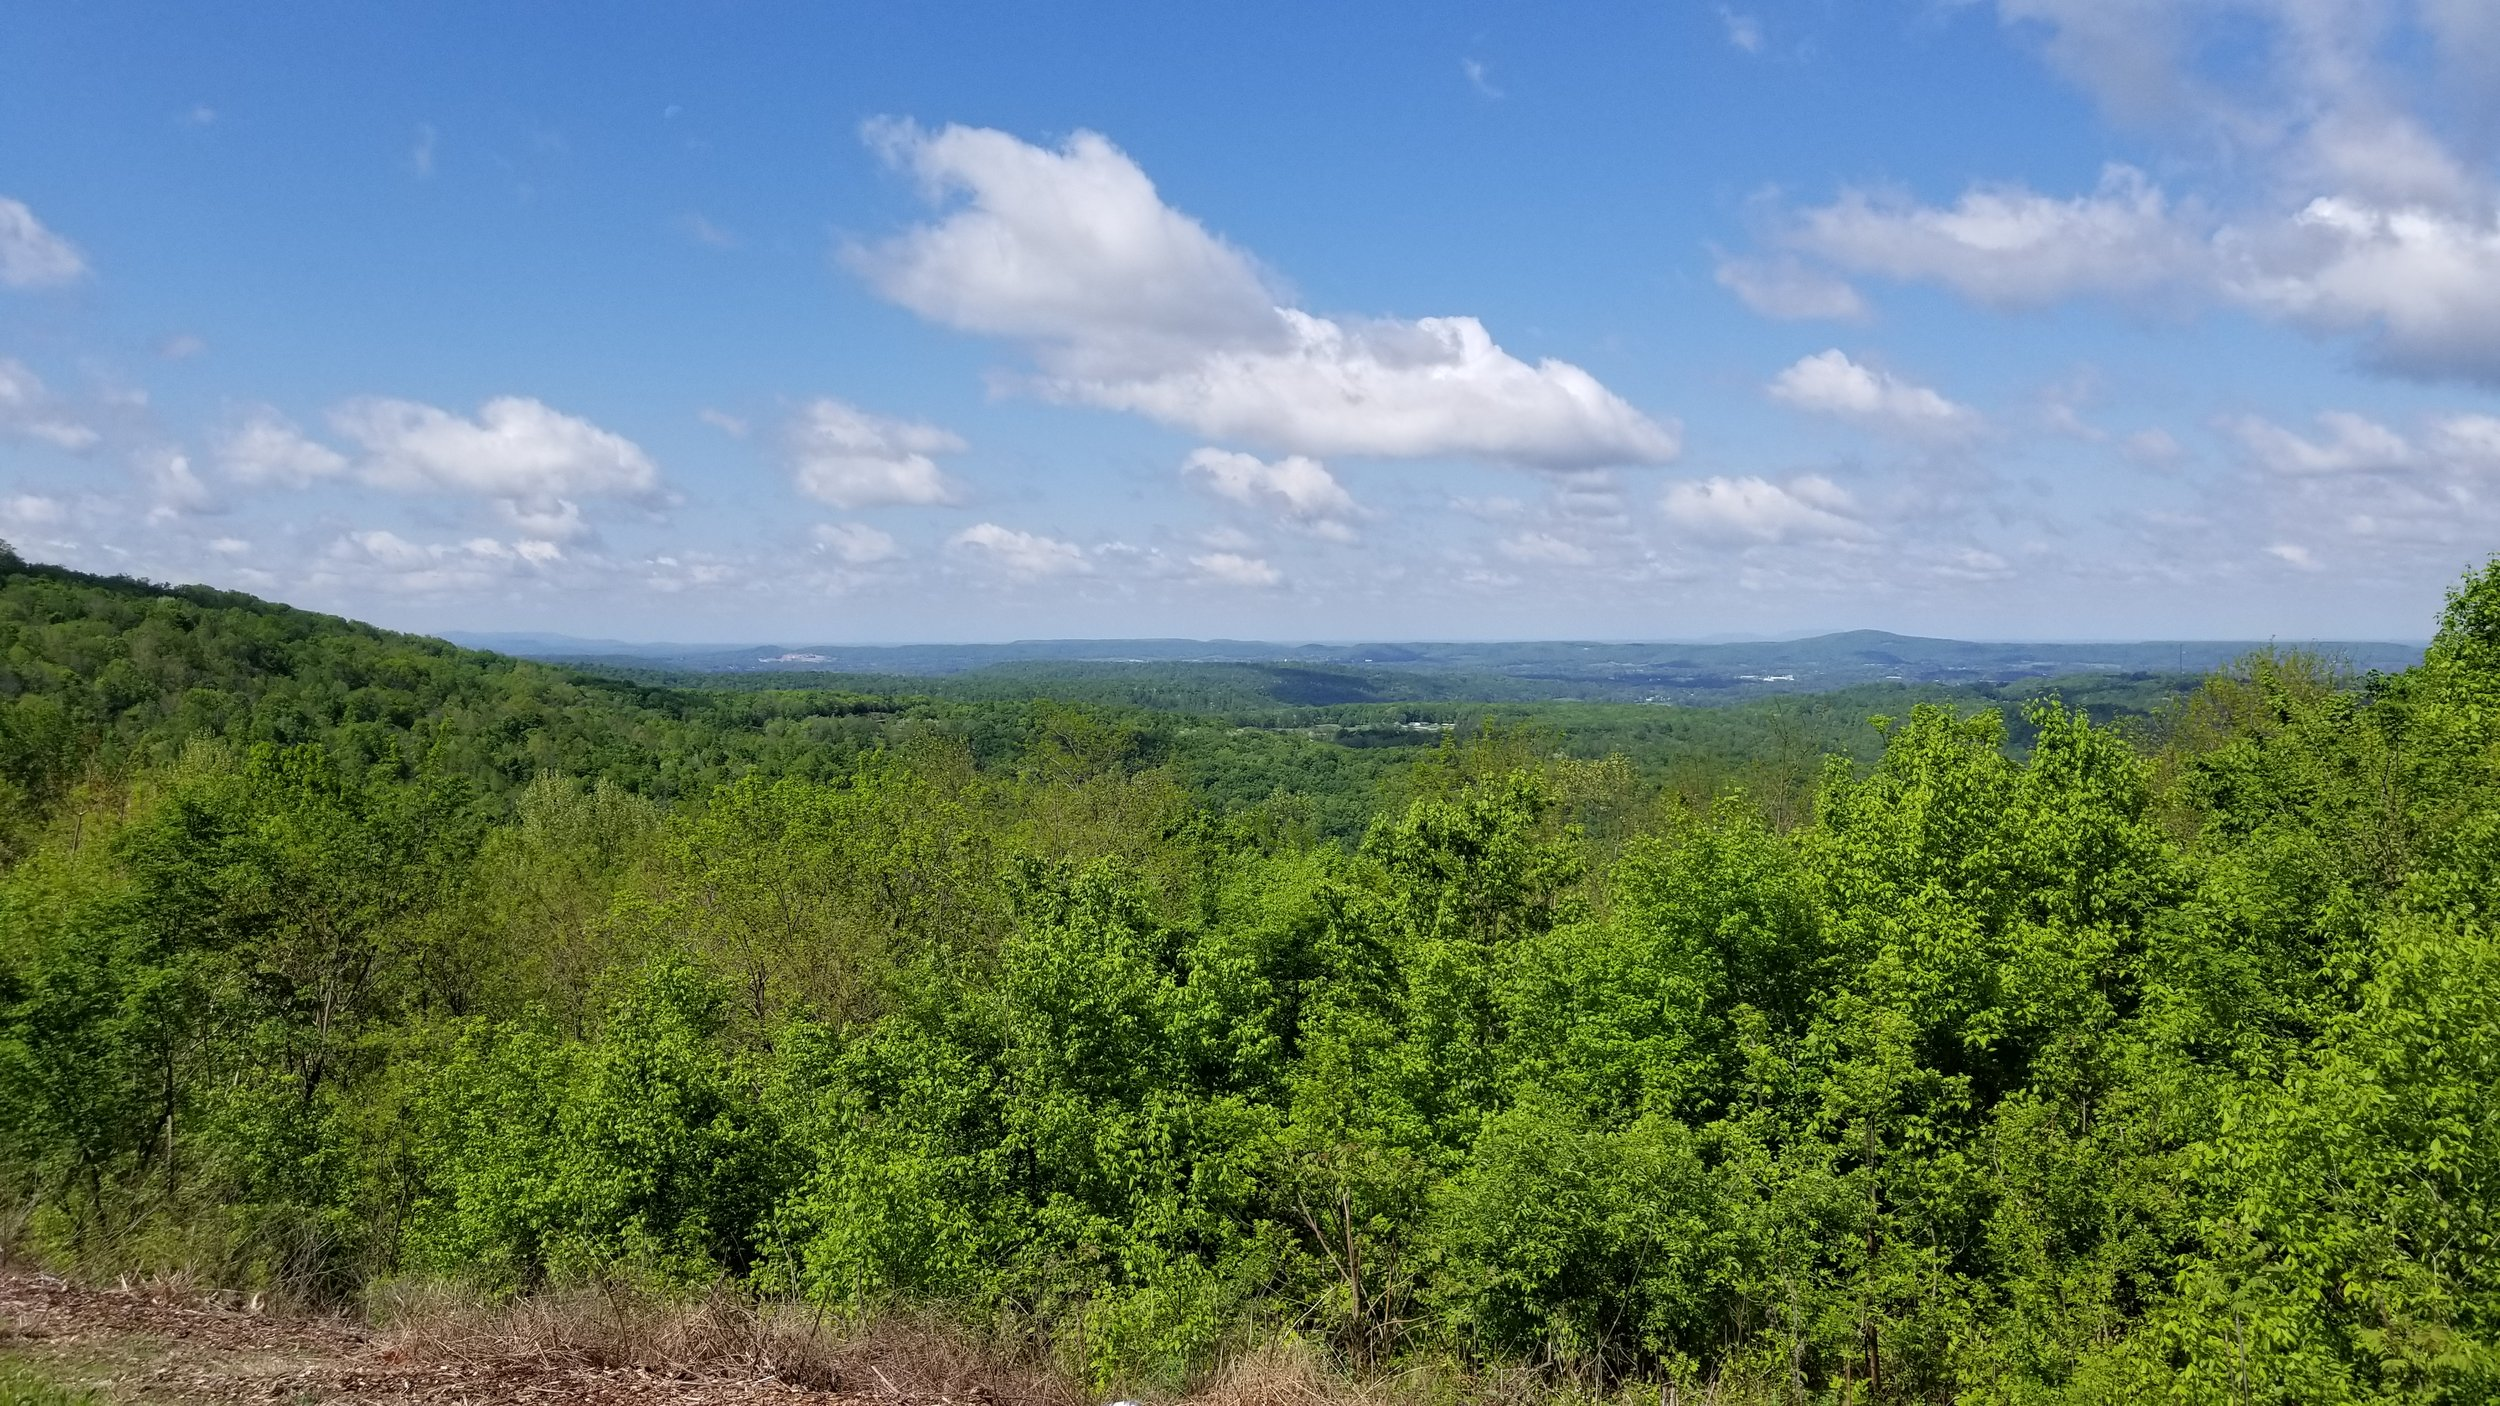 From the Sunset Rock Overlook along U.S. 70 near Sparta you can see more than 30 miles away.